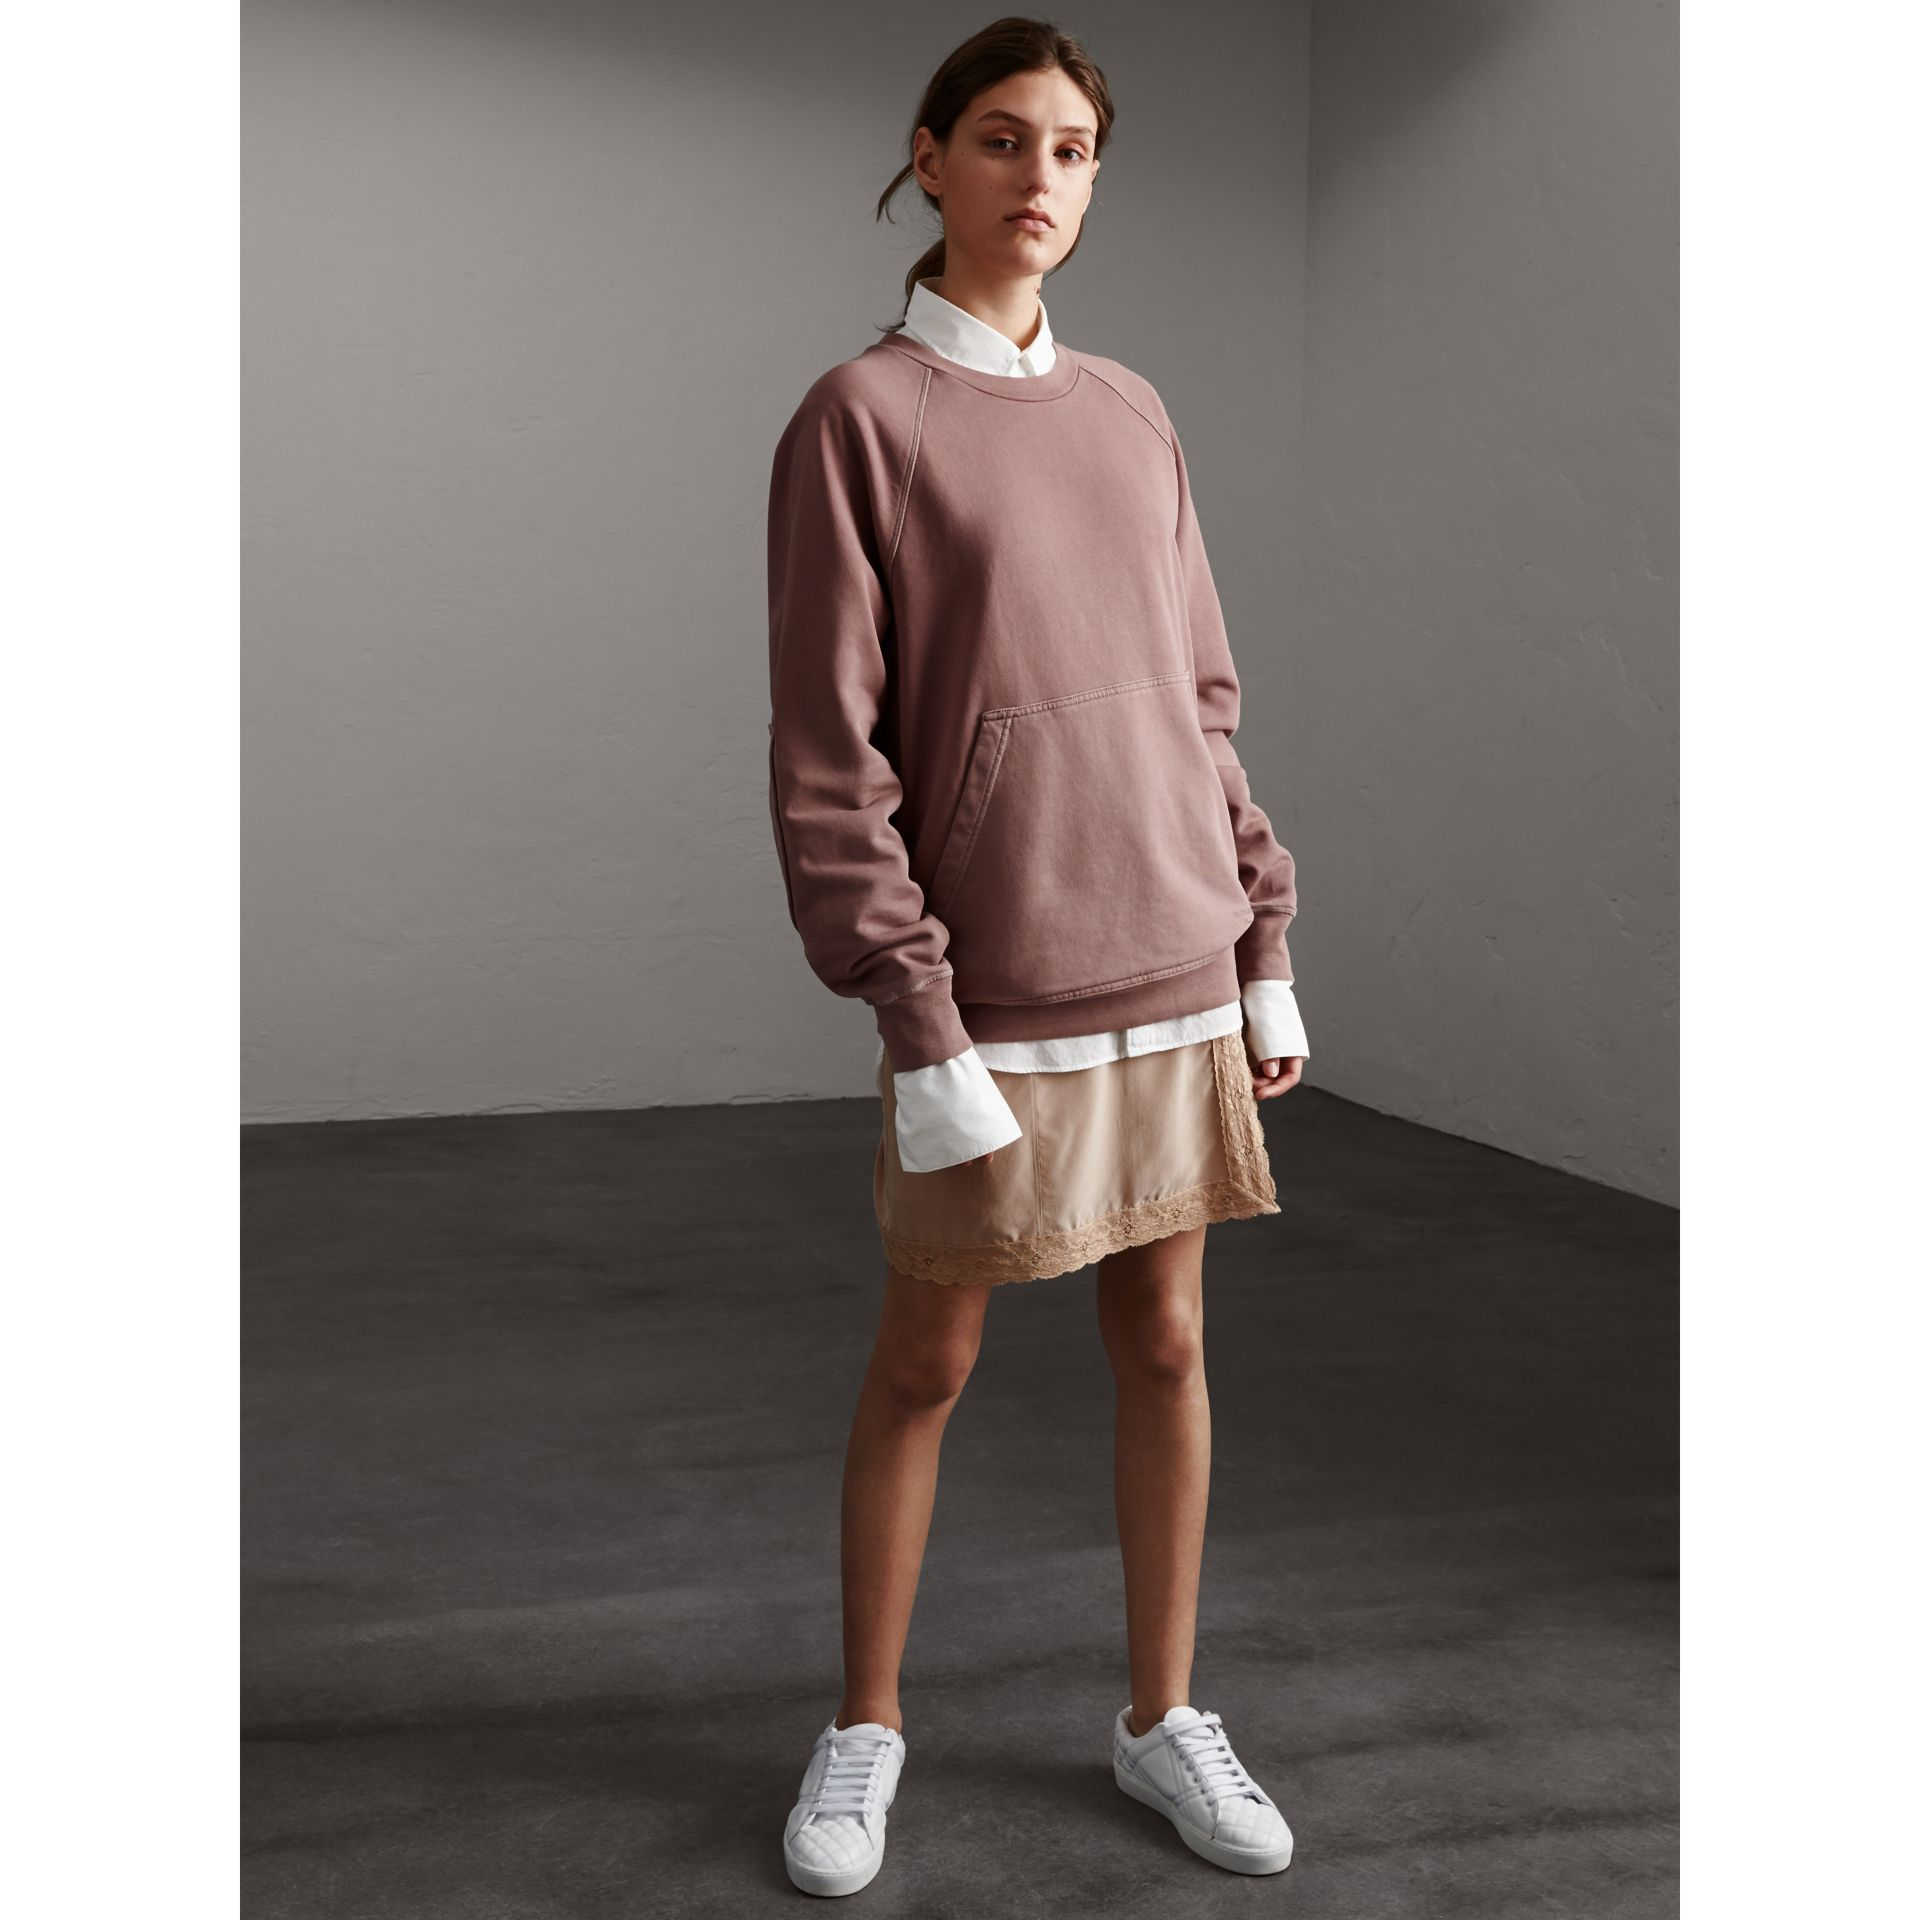 Unisex Pigment-dyed Cotton Oversize Sweatshirt in Dusty Mauve - Women | Burberry - gallery image 6